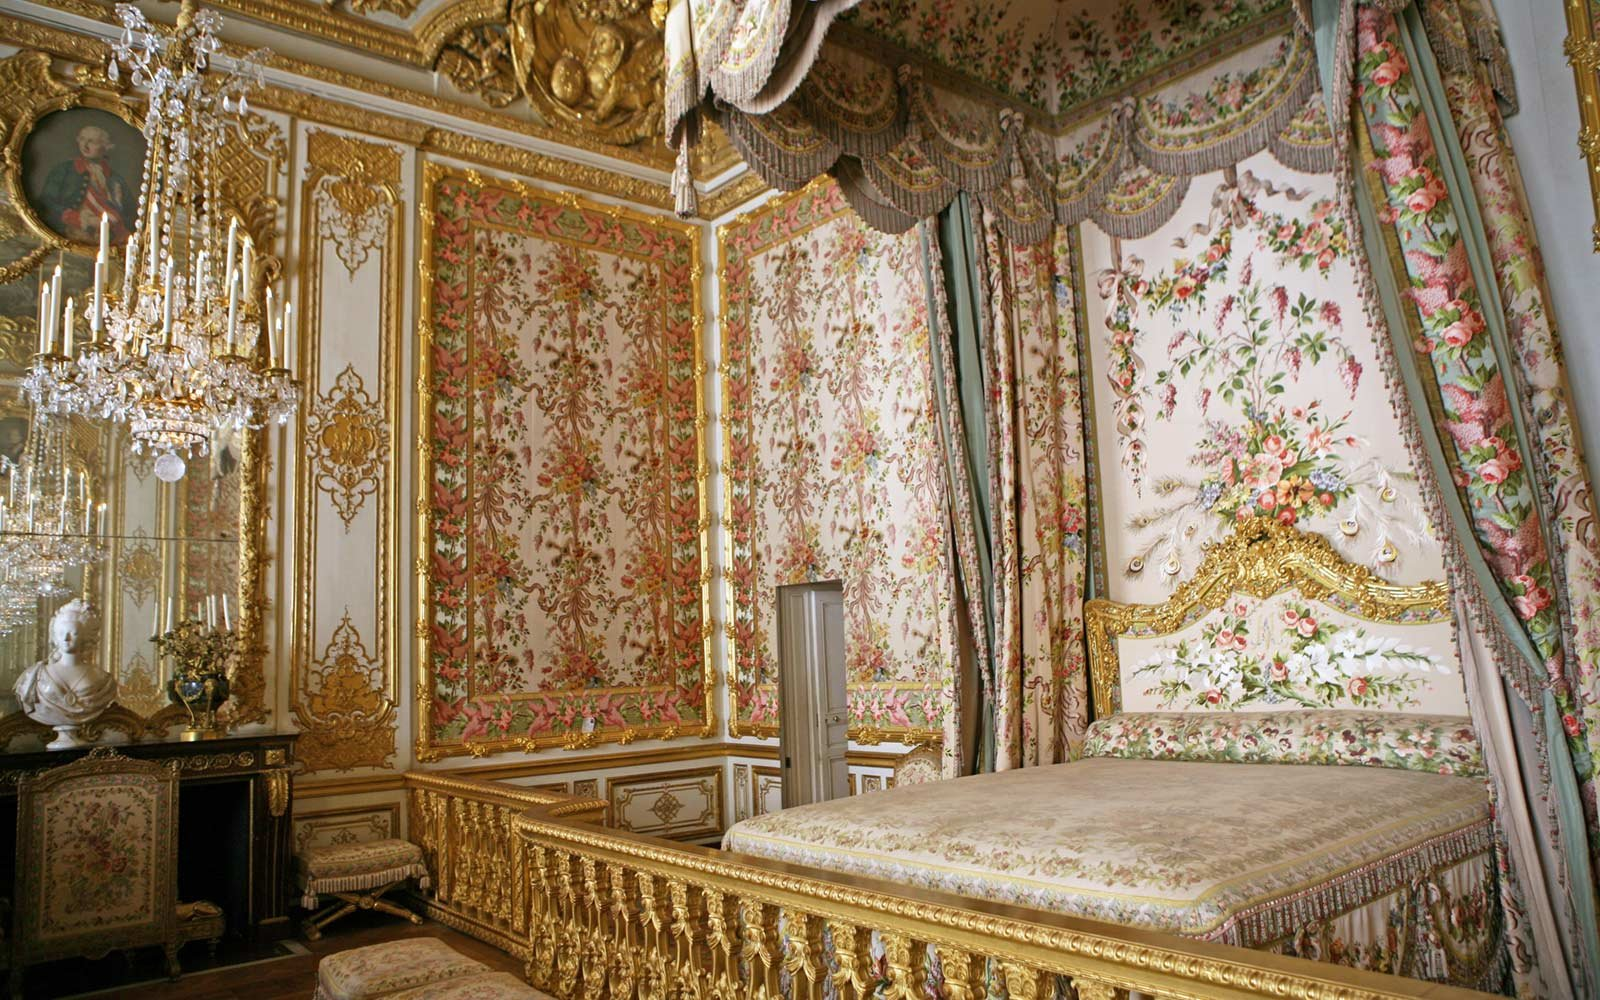 Queens Chambers, Versailles, France